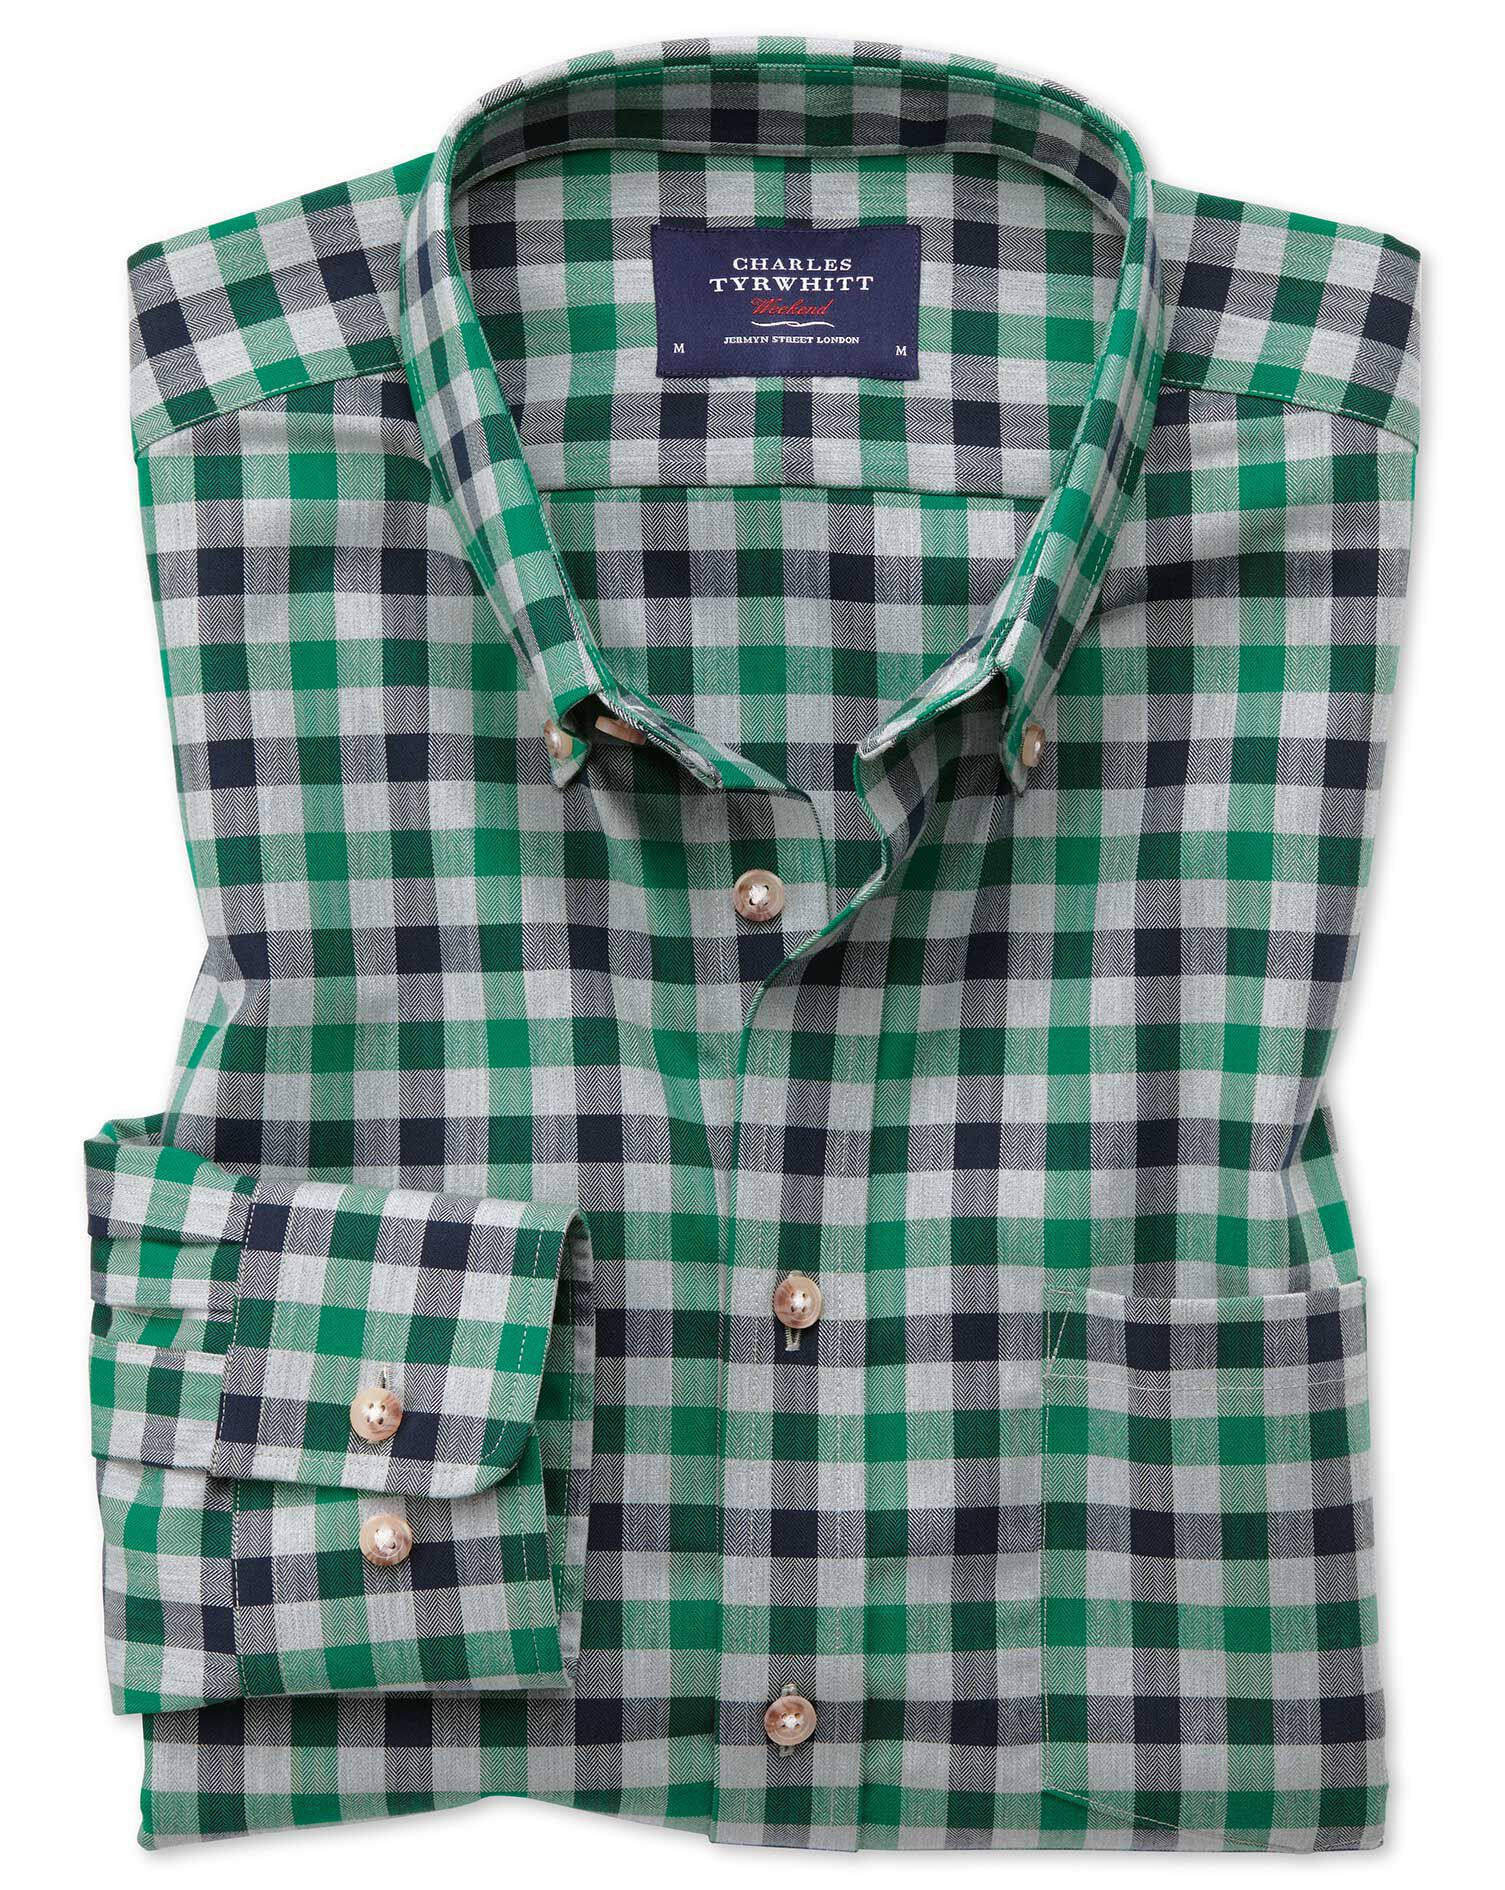 Slim Fit Button-Down Non-Iron Twill Green and Navy Gingham Cotton Shirt Single Cuff Size Medium by C